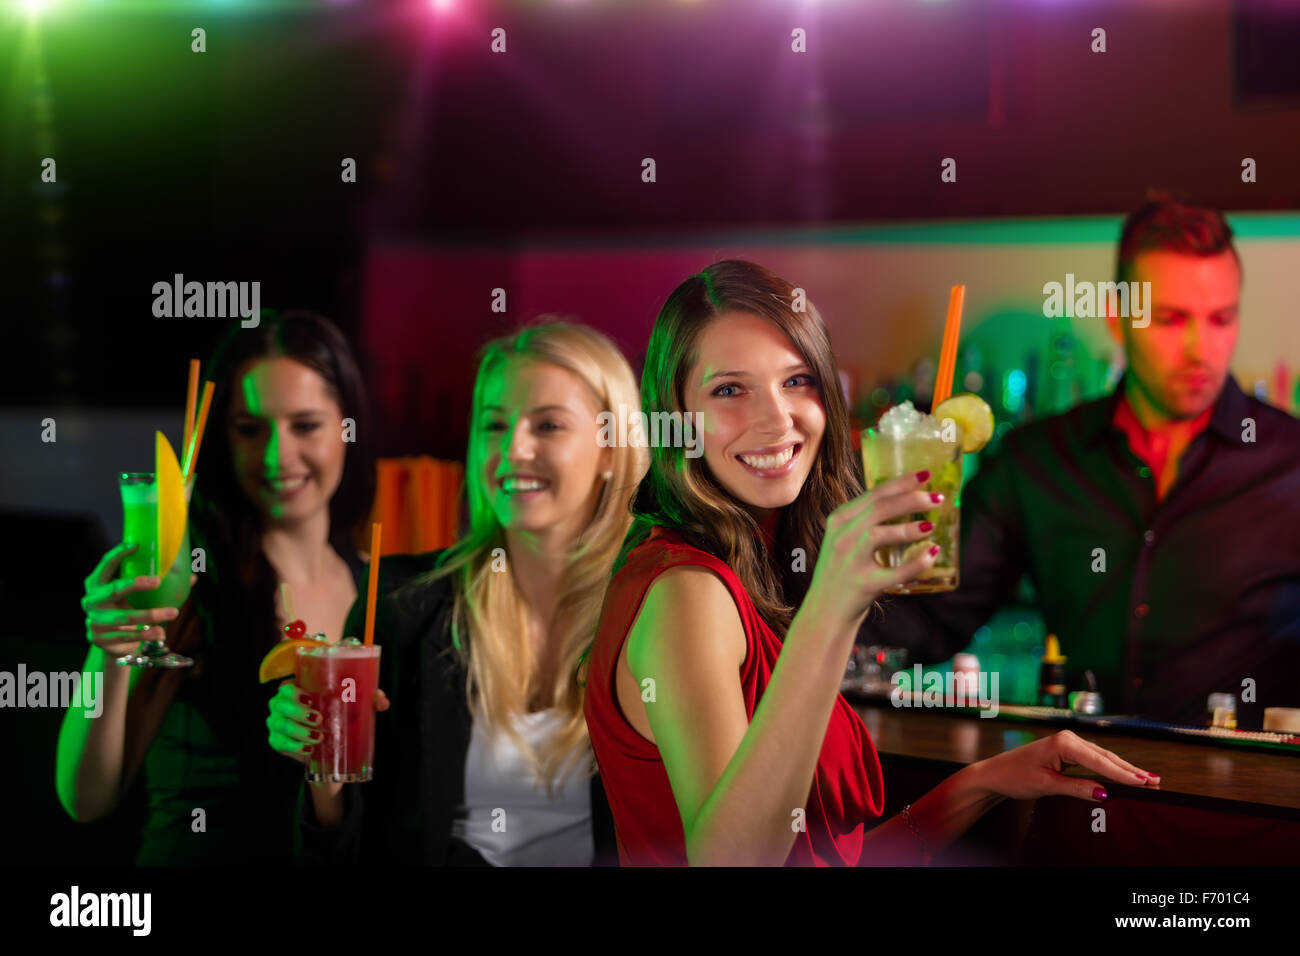 Young friends drinking cocktails together at party - Stock Image